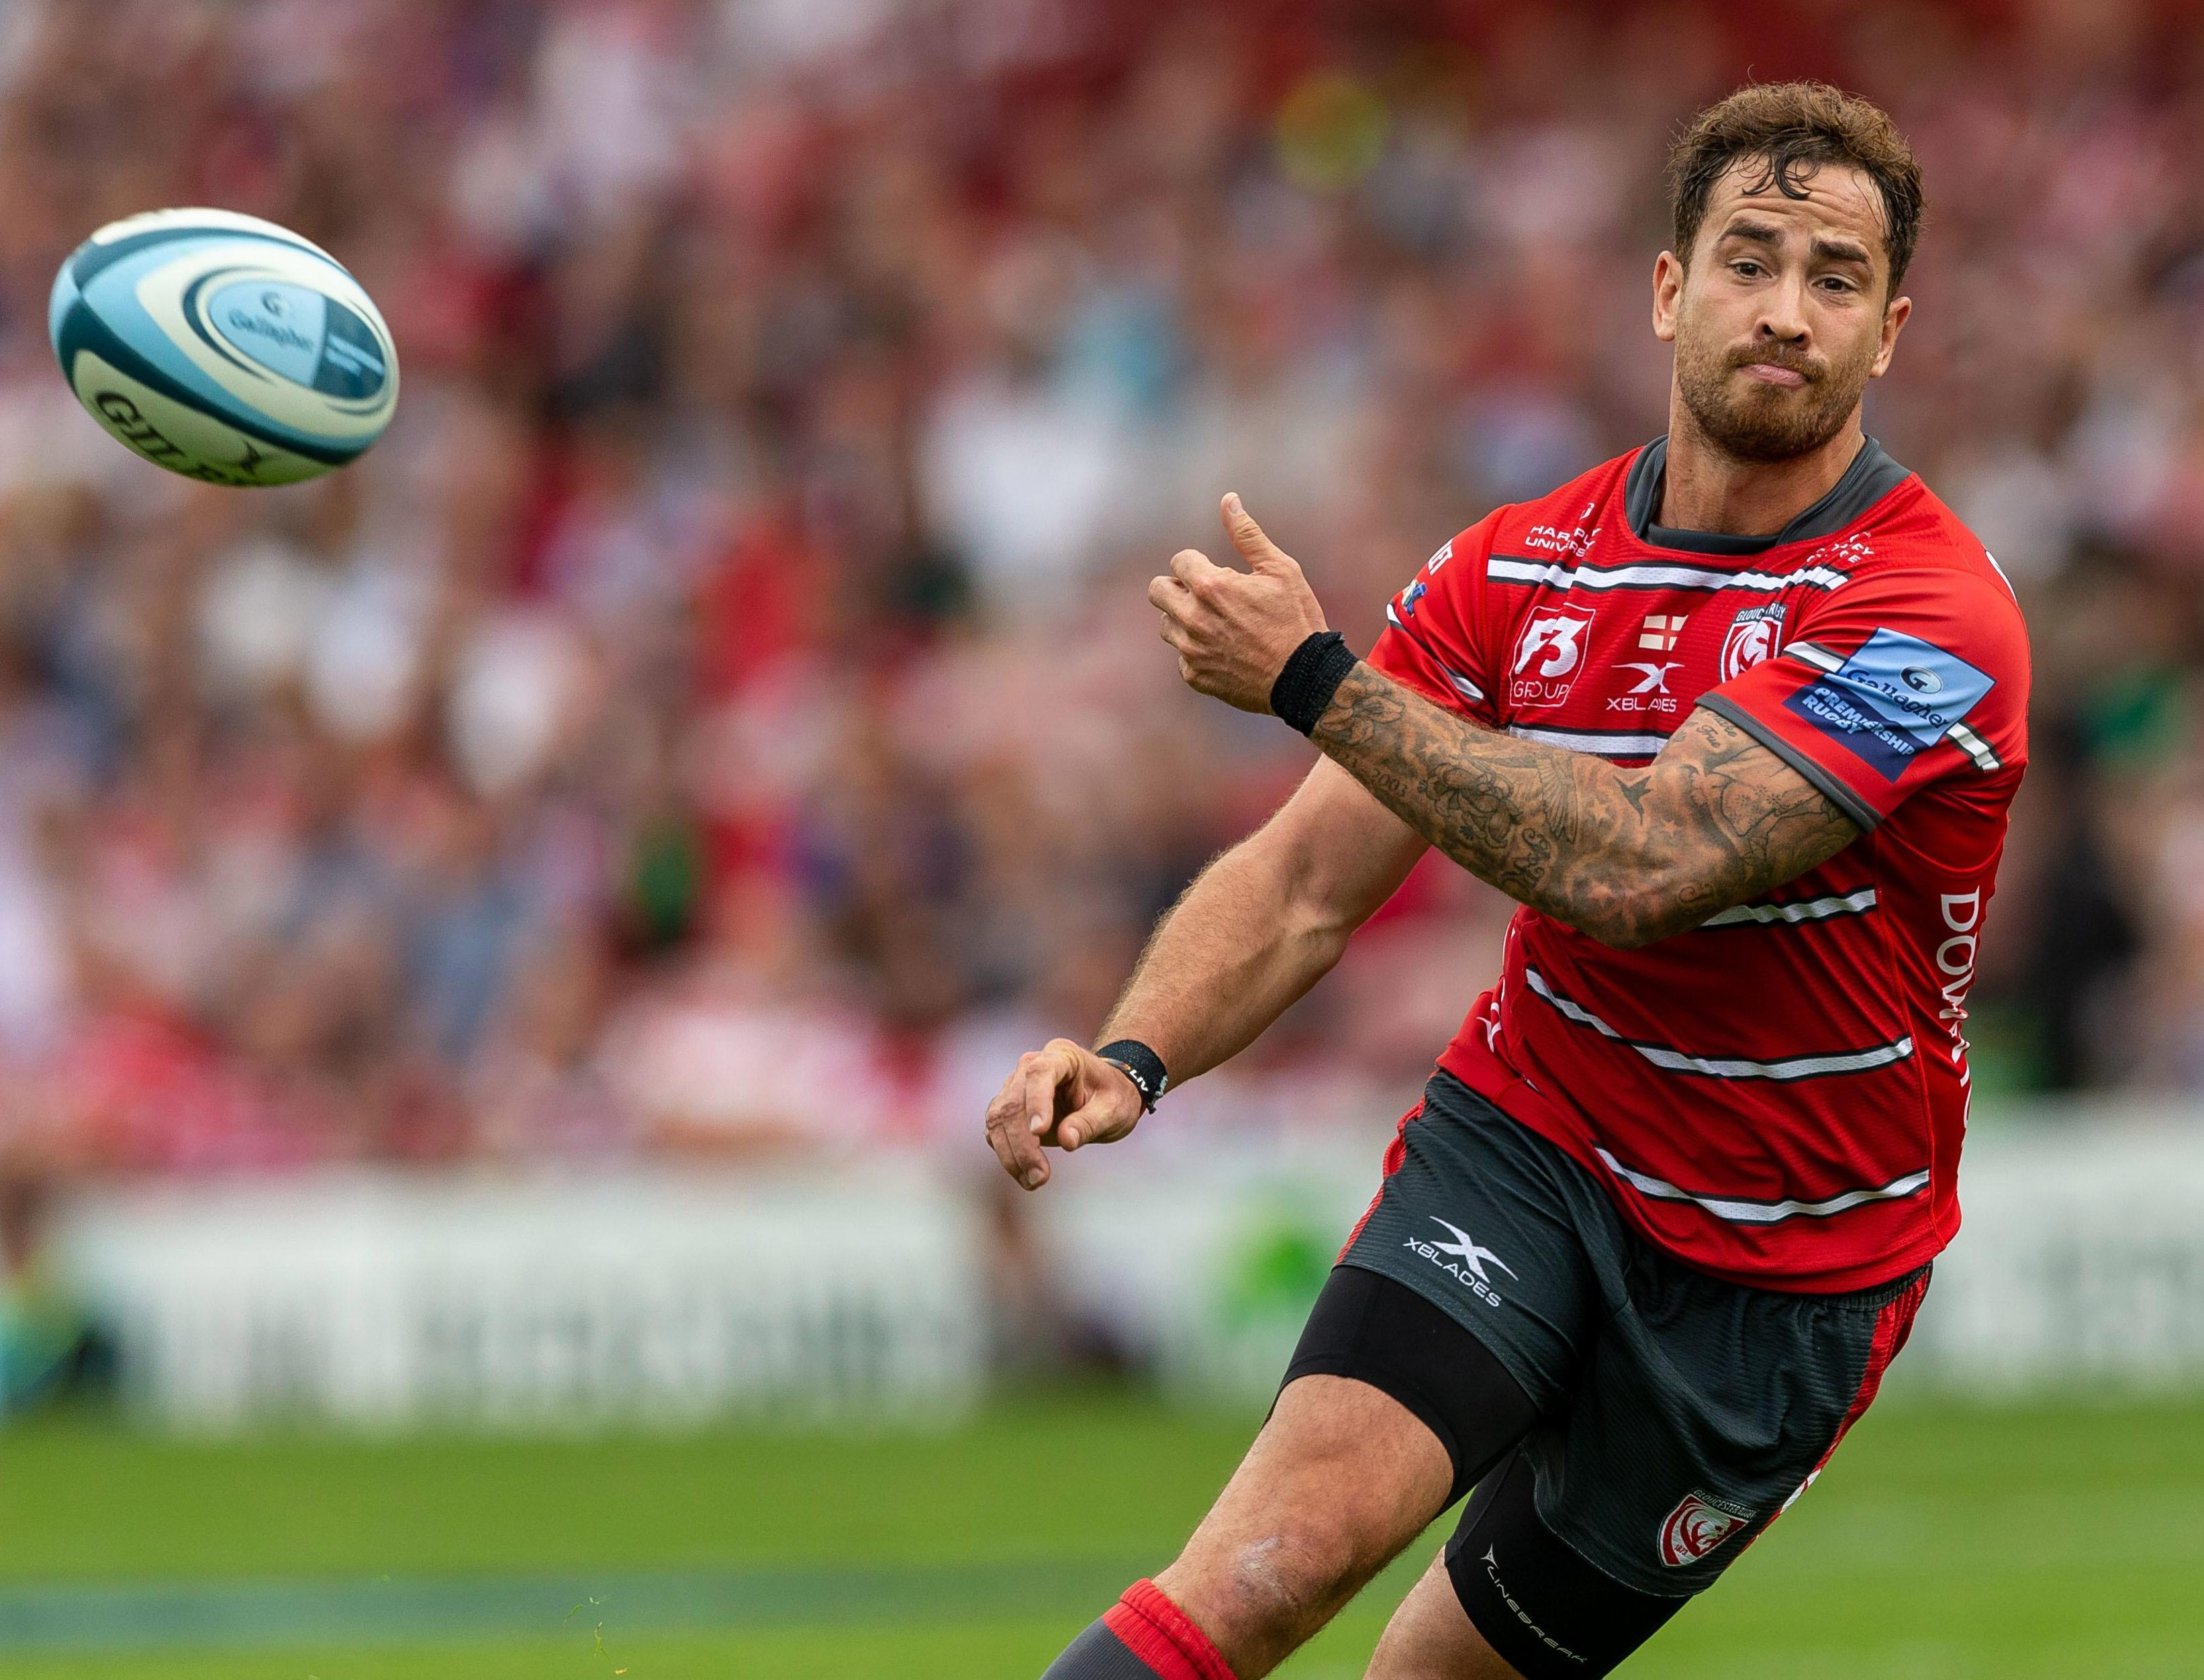 England fly-half Danny Cipriani suggested his wages and troubled background might well be worth it as he helped Gloucester beat Northampton